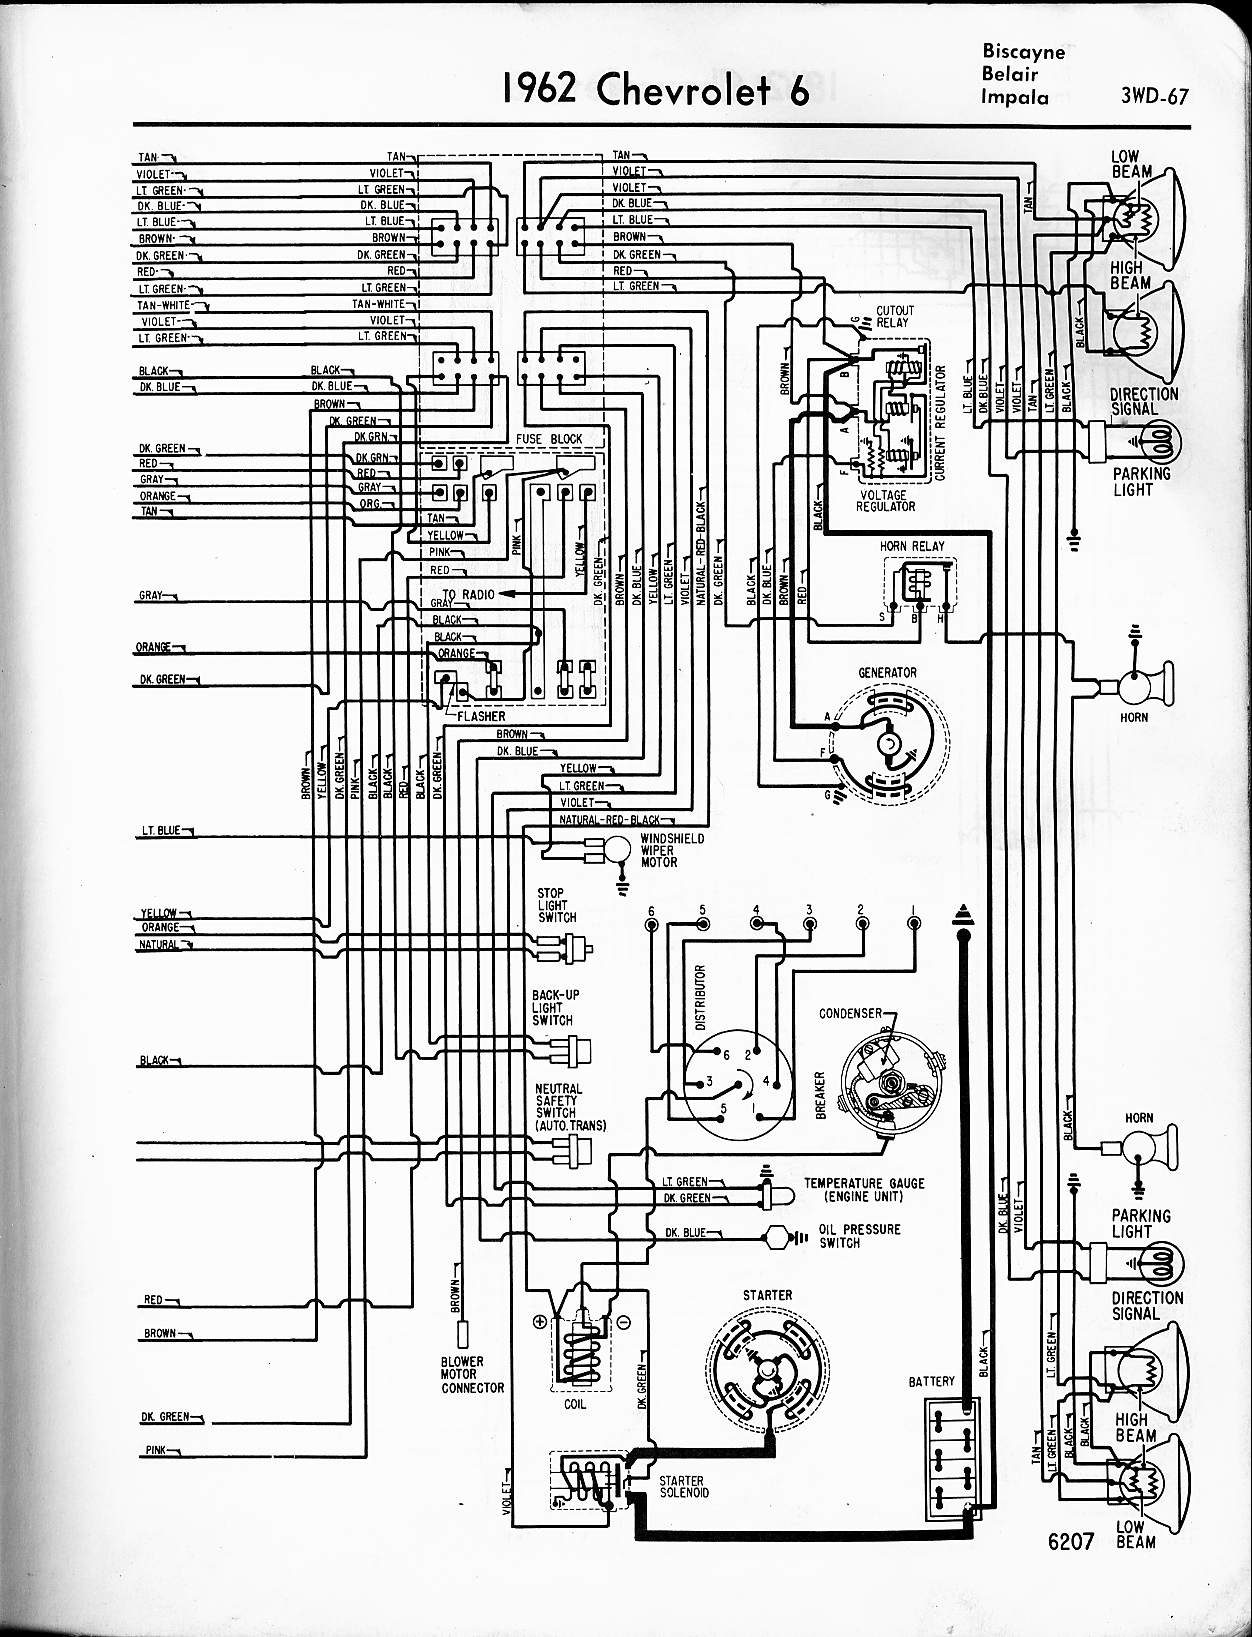 Jvc Kd S16 Wiring Diagram 25 Images Car Stereo Pin Mwirechev62 3wd 067resized6652c869 R200